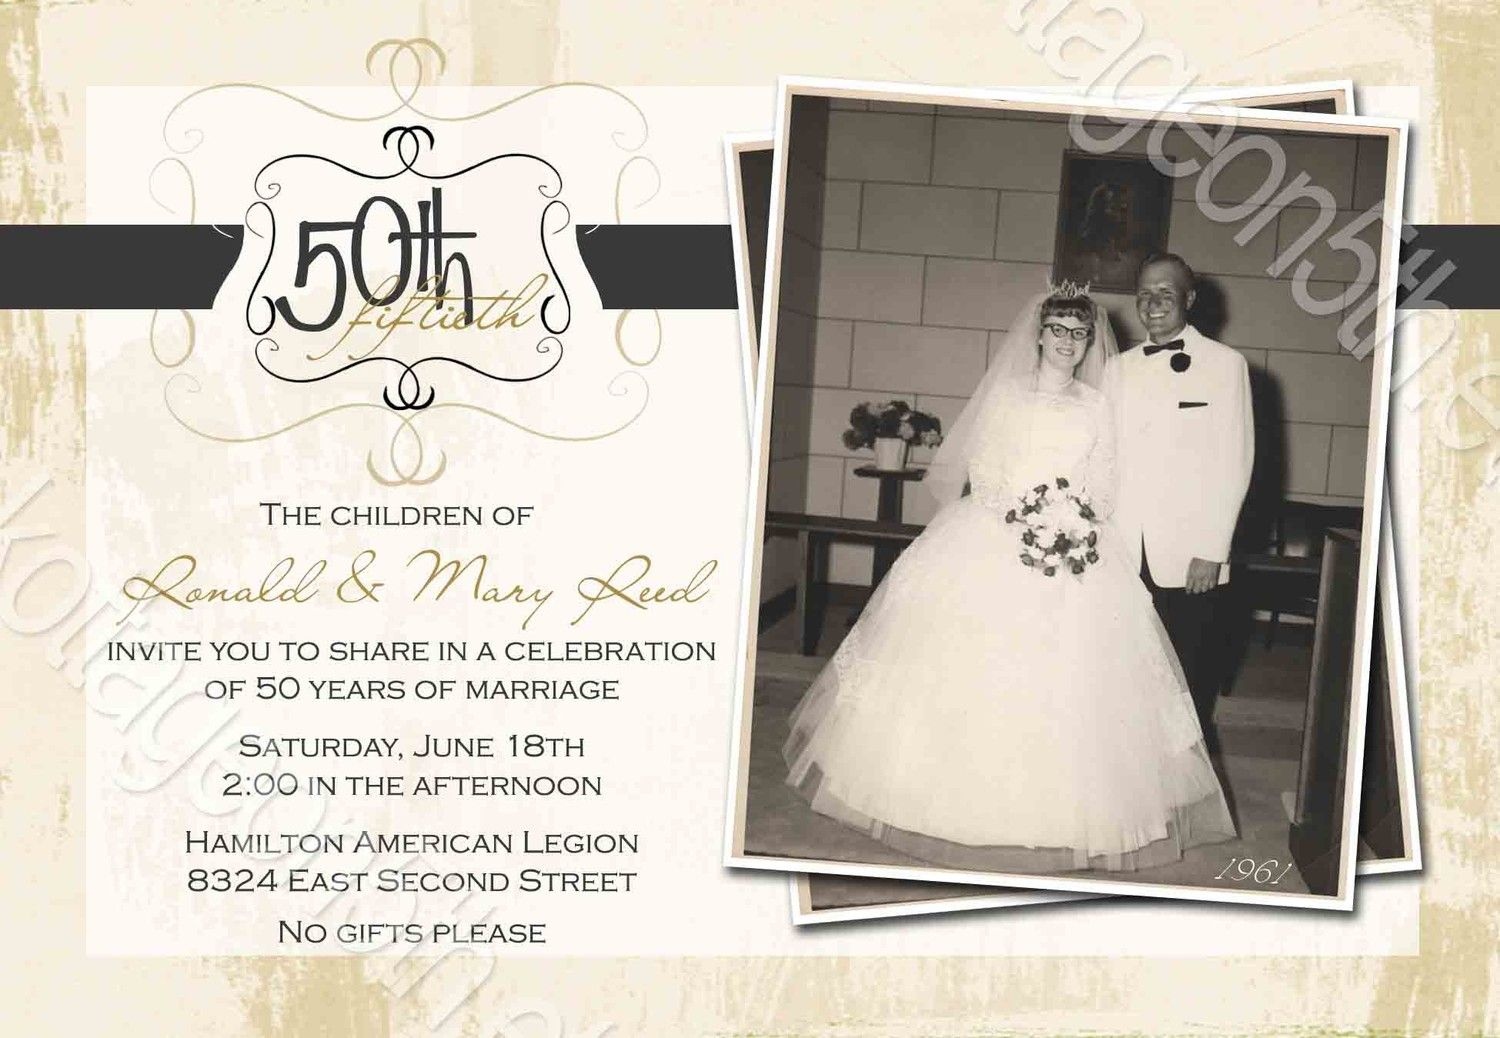 50th Wedding Anniversary Invitation Ideas: Free 60th Anniversary Invitation Templates